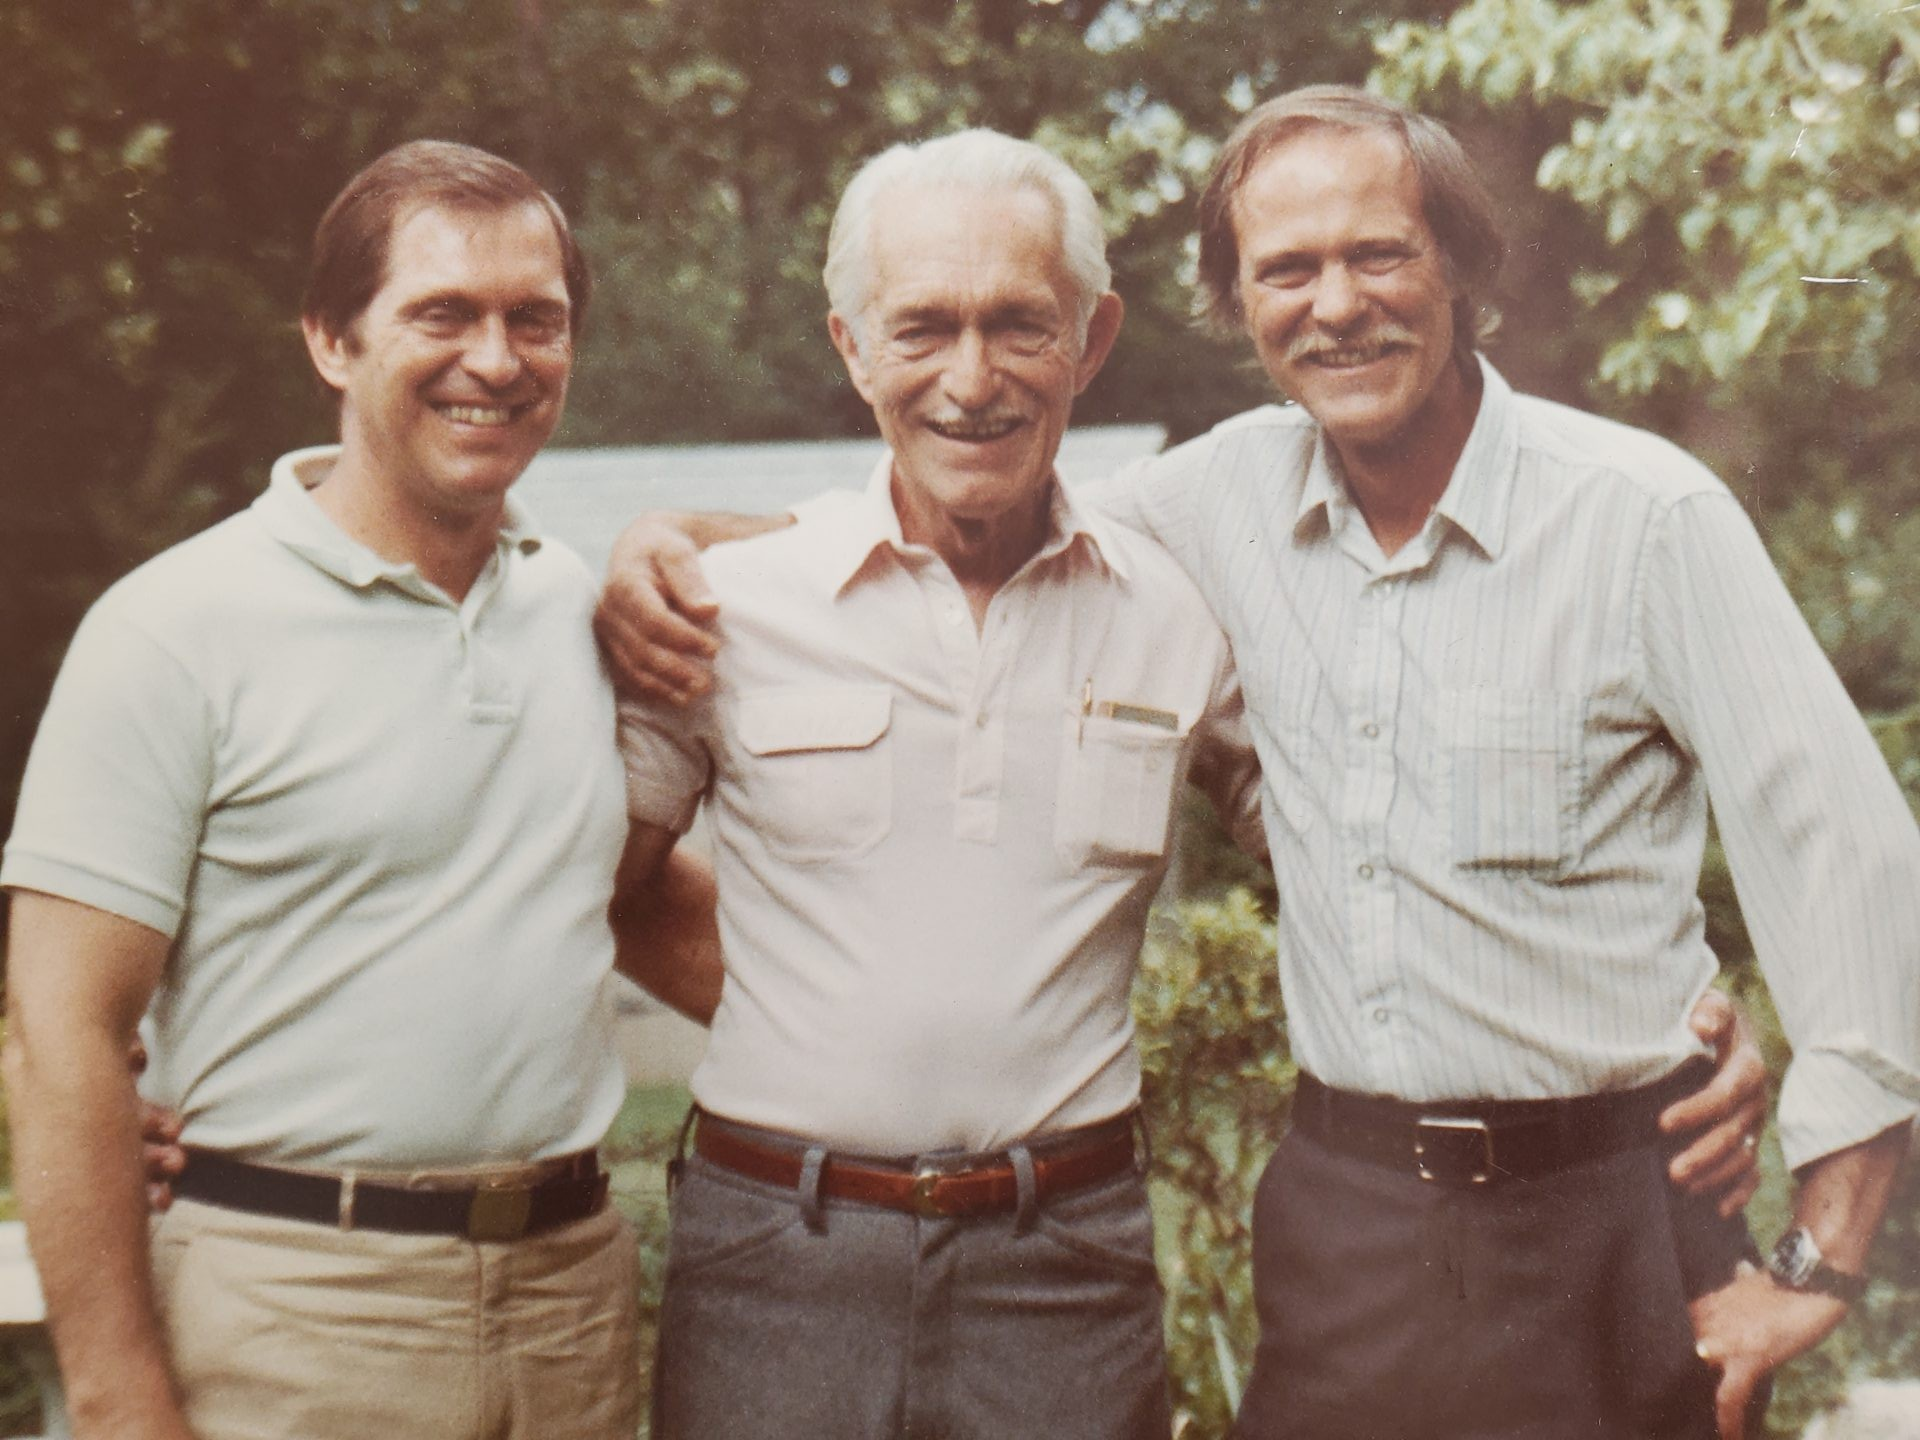 Dad with his brother Donald Jr. and their father Donald.